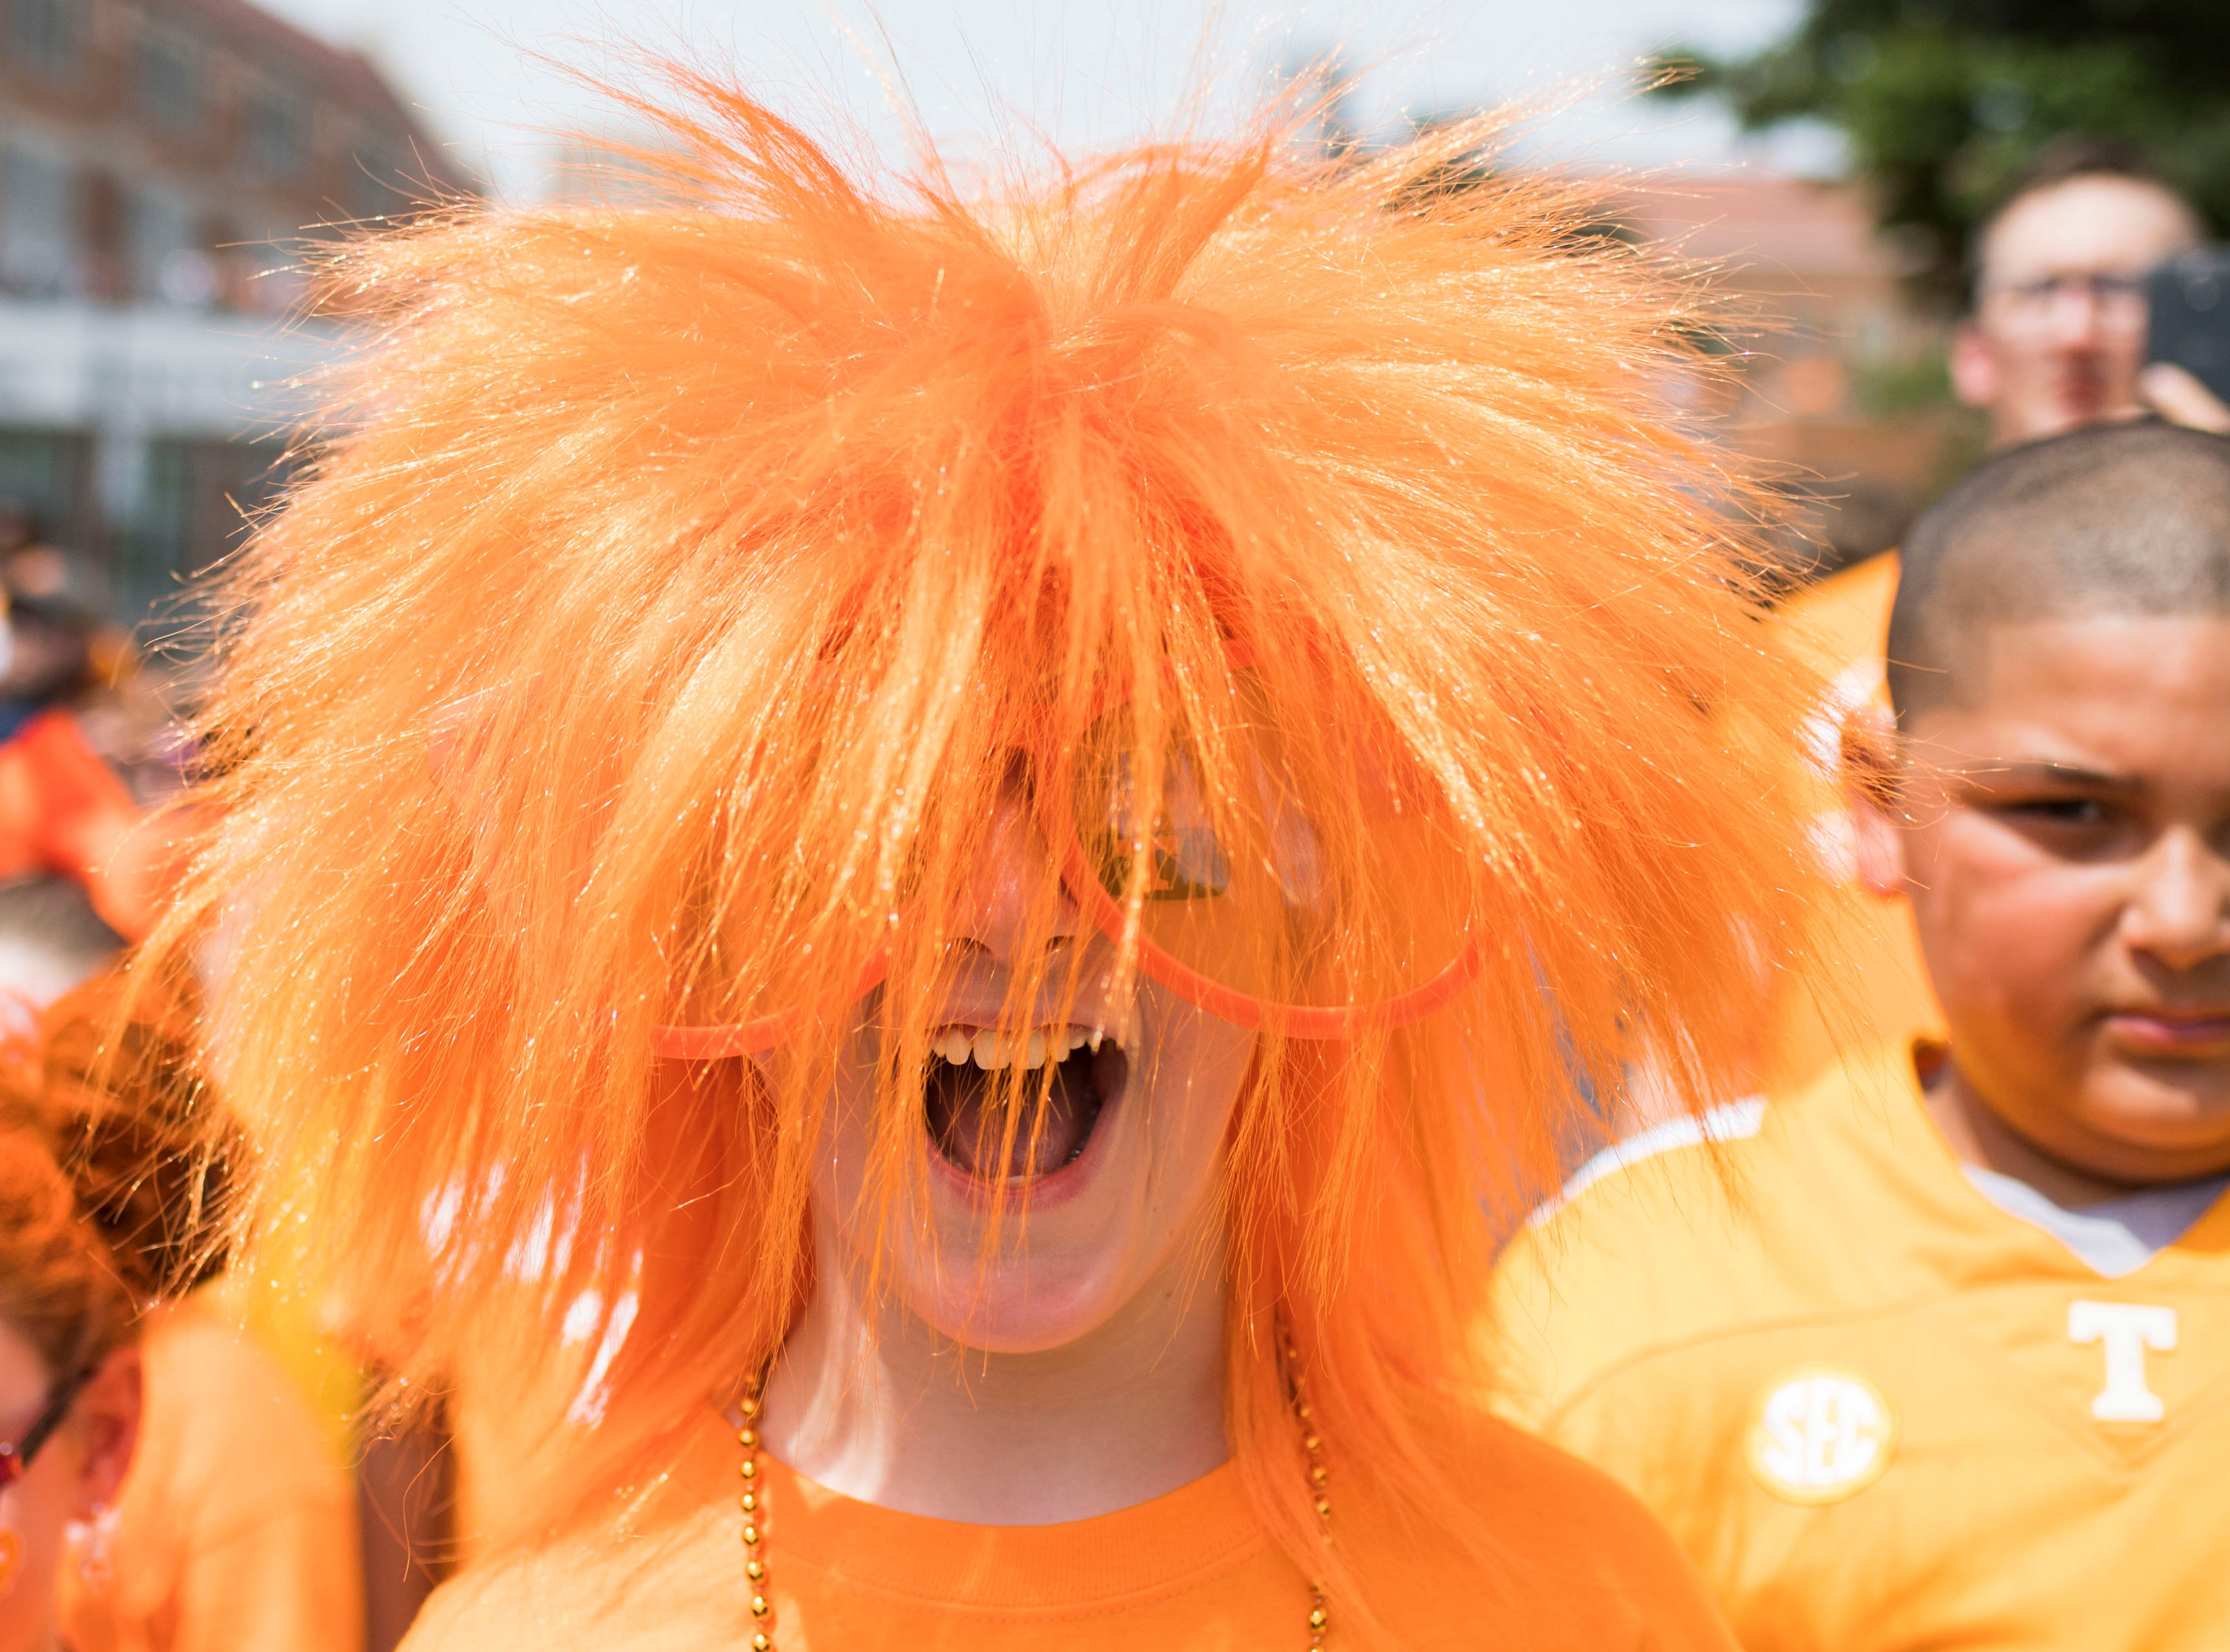 Oliver Snowden poses for a photo before a Tennessee Vols football game against ETSU outside Neyland Stadium Saturday, Sept. 8, 2018.